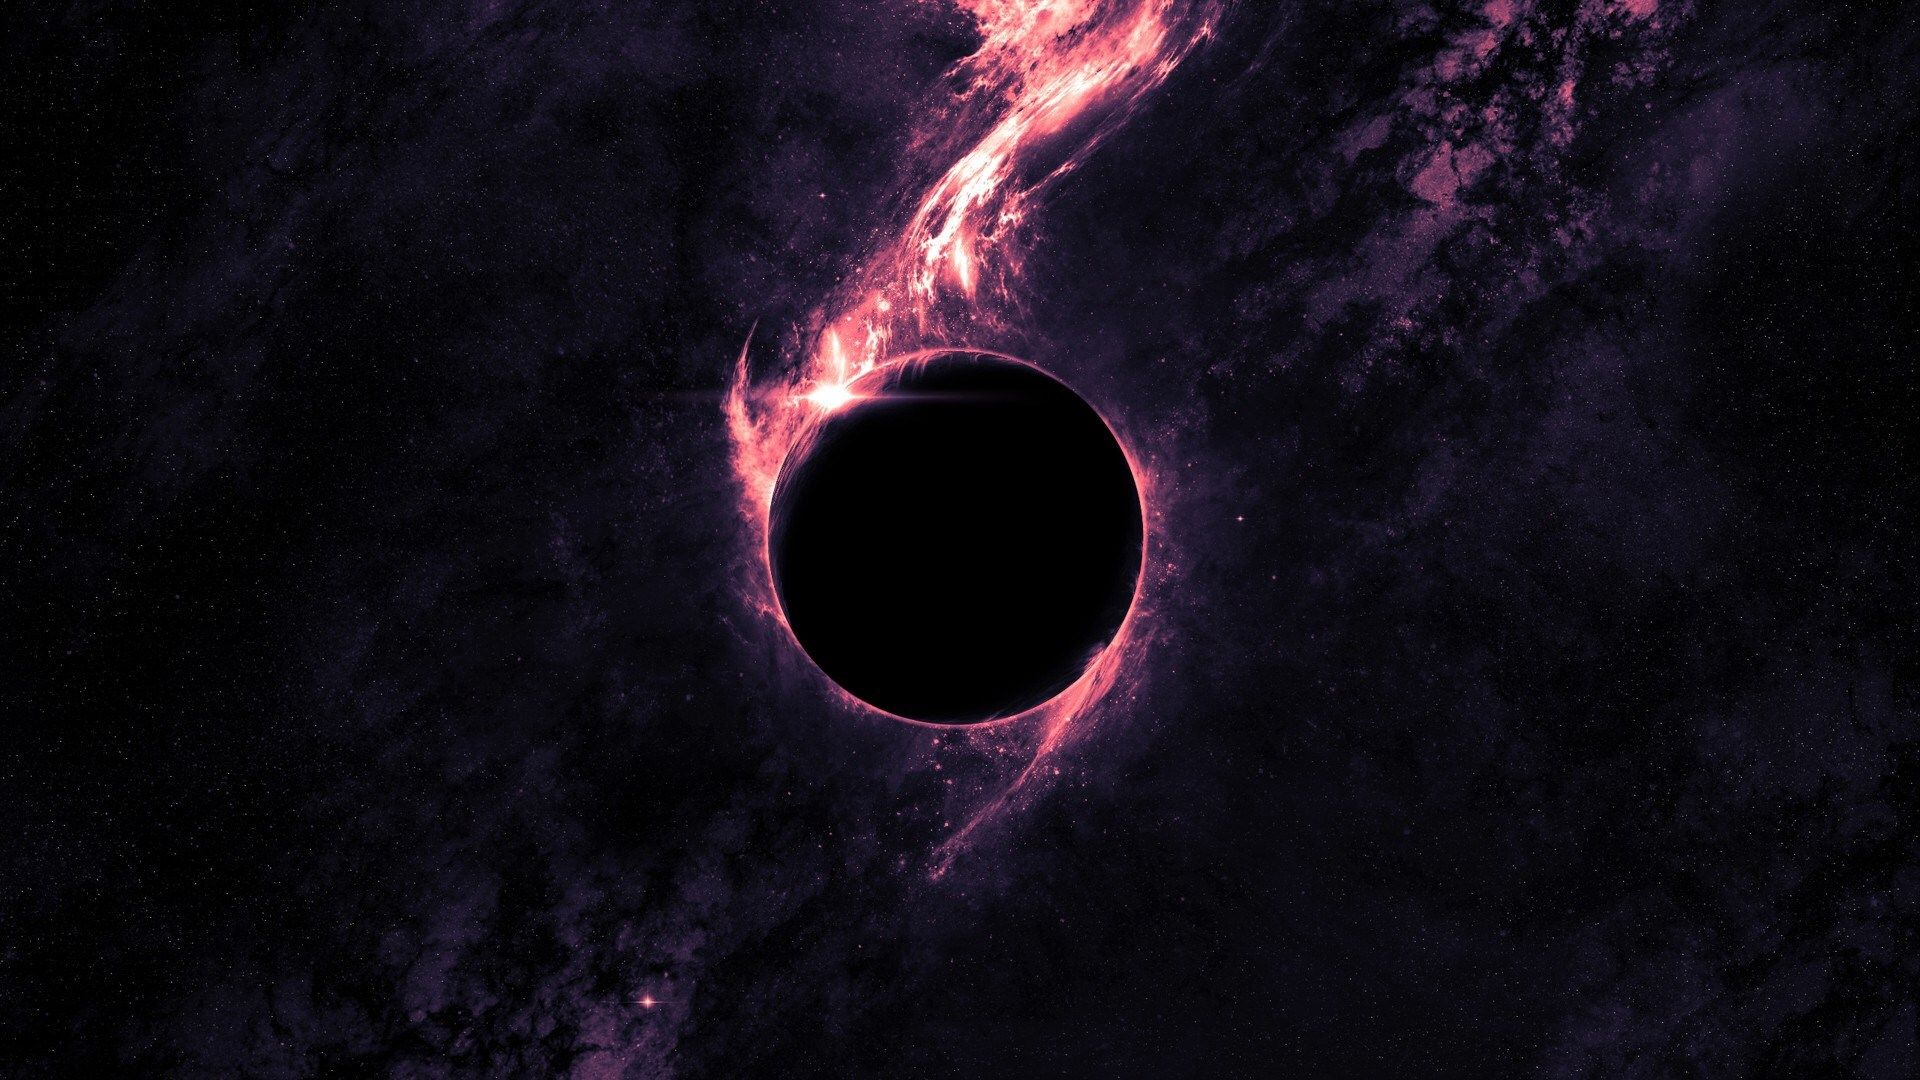 Black Hole Wallpapers   Top Black Hole Backgrounds 1920x1080